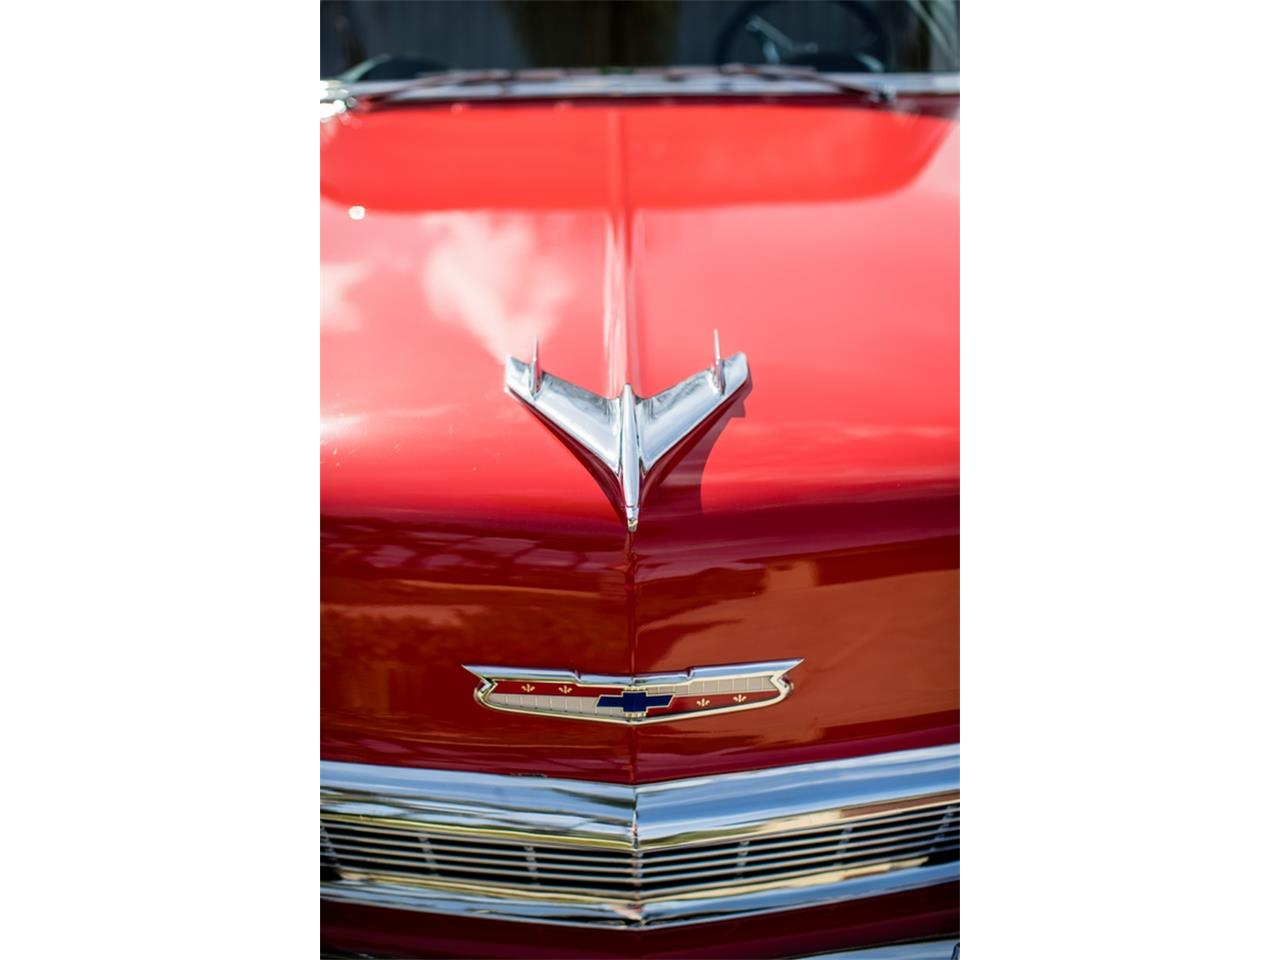 Large Picture of 1956 Chevrolet Bel Air located in California - $47,000.00 - N6LL